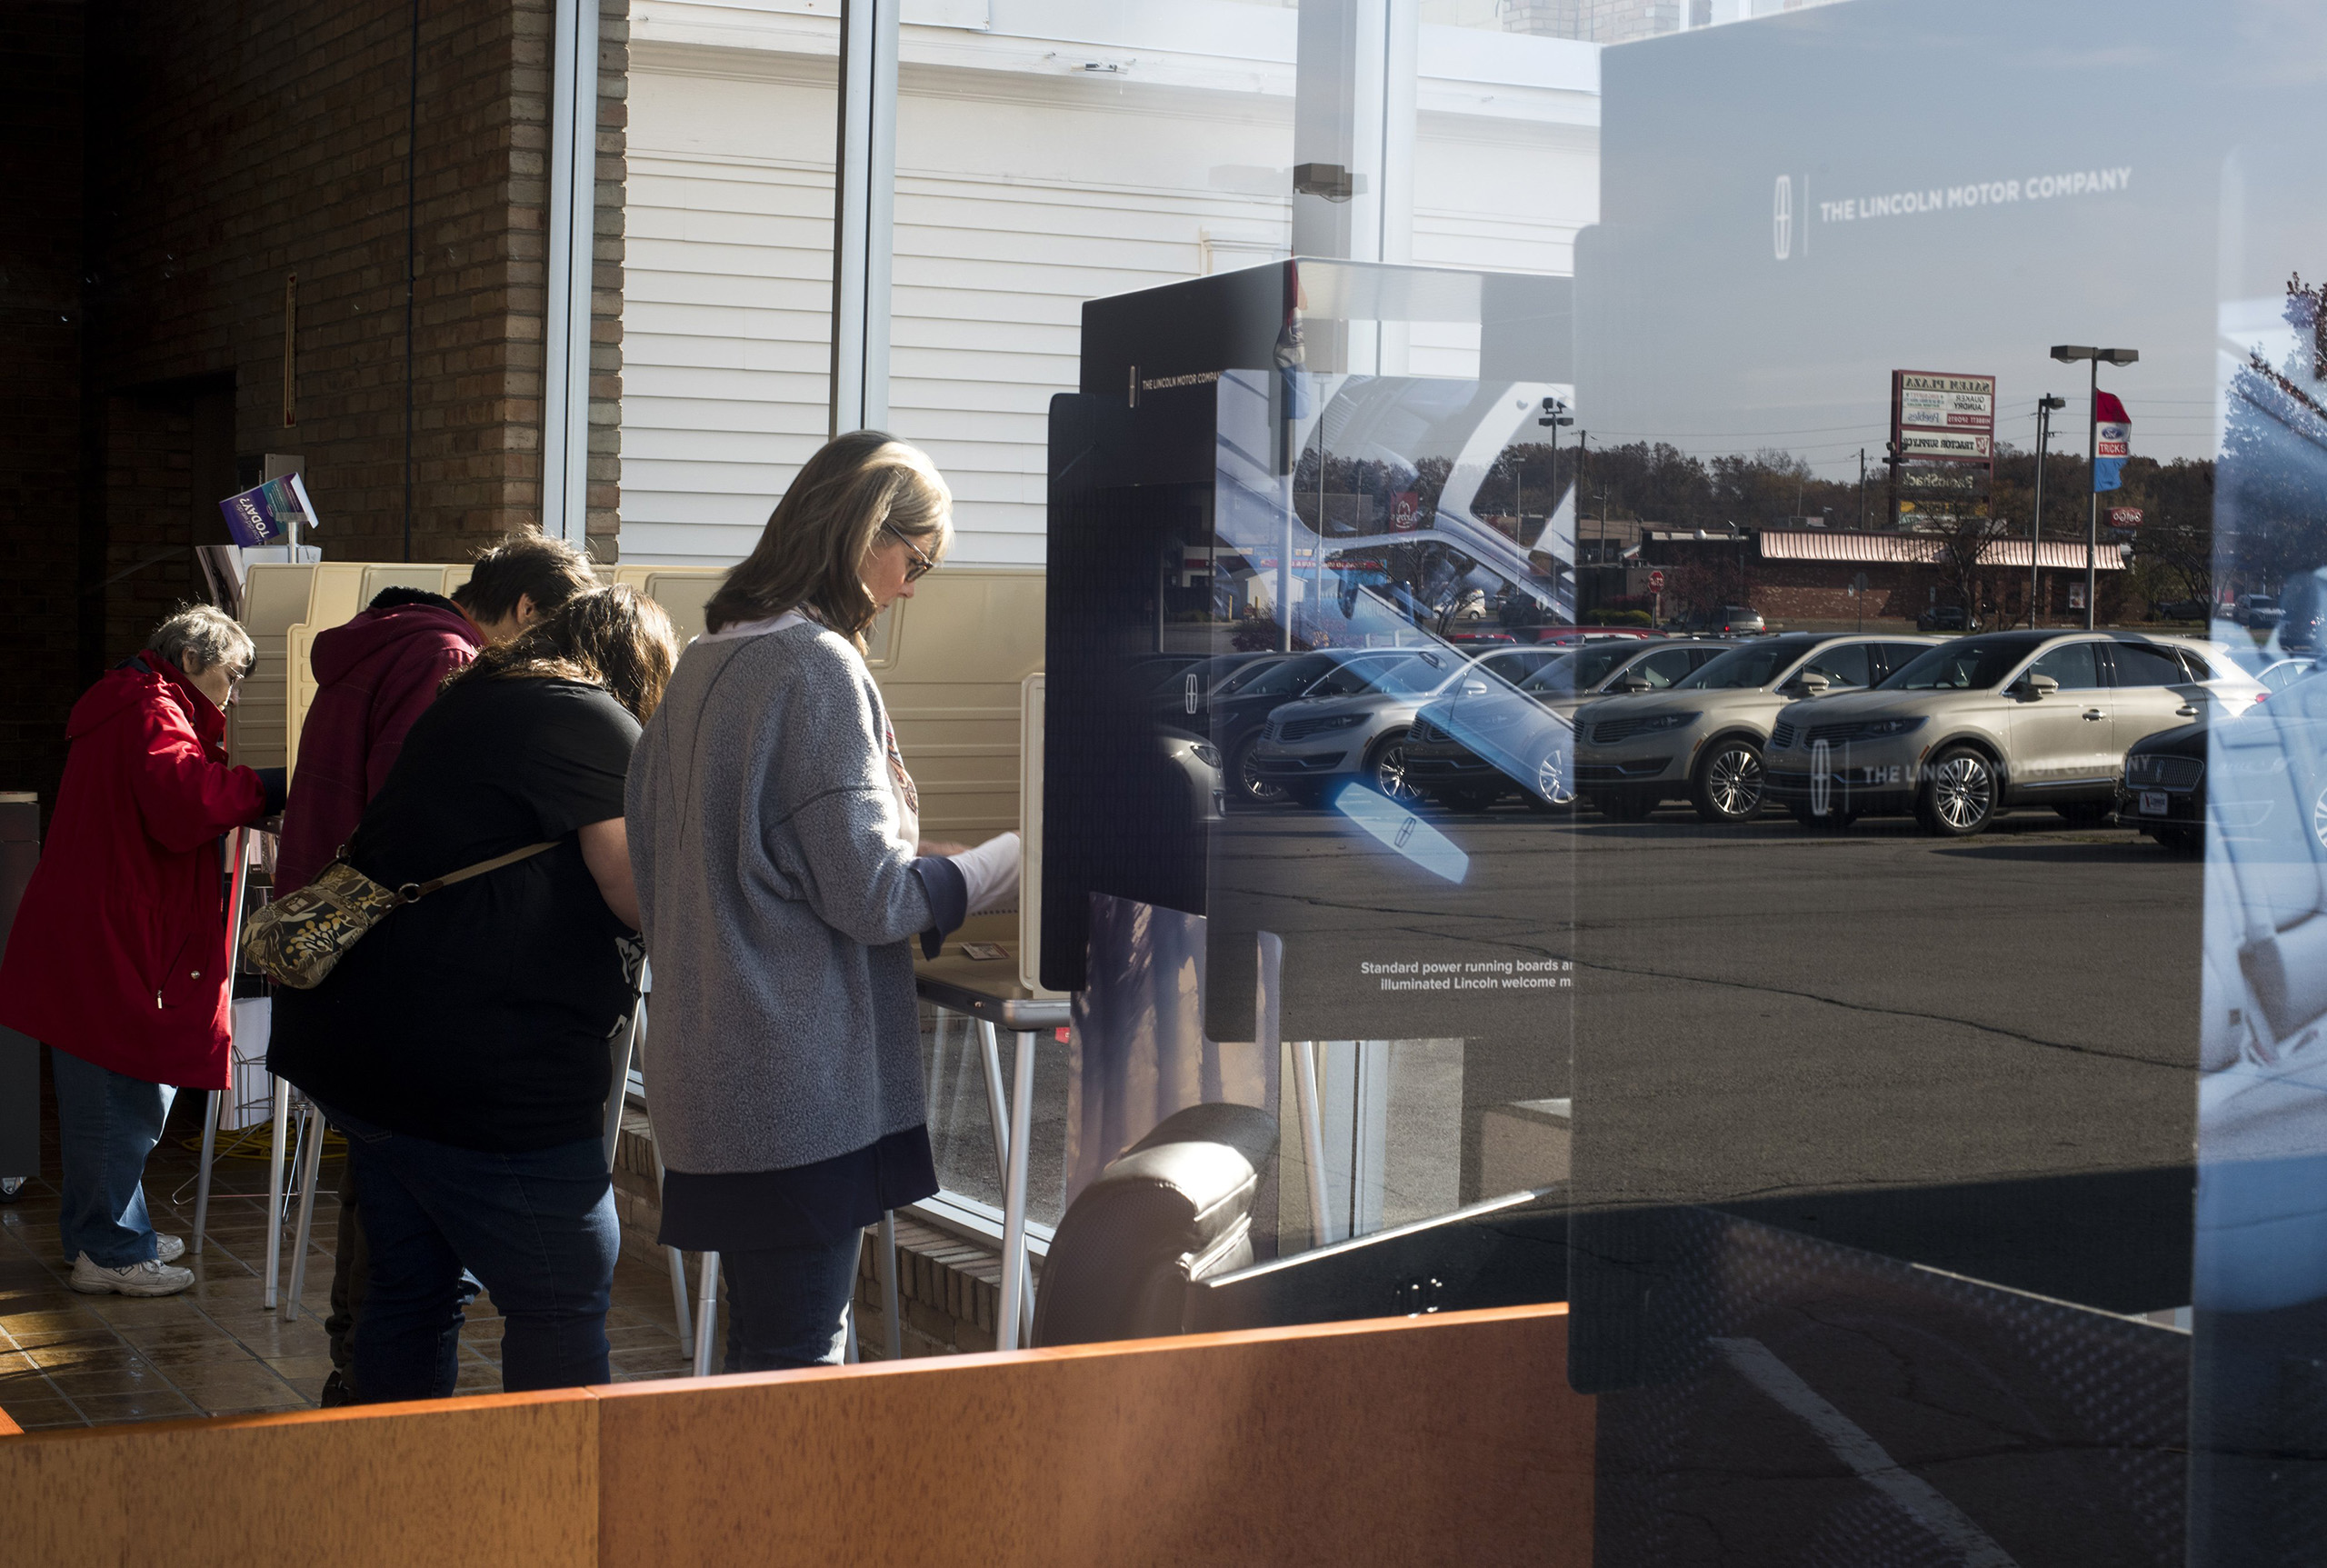 Voters cast their ballots at the Donnell Ford car dealership on Nov. 8, 2016 in Salem, Ohio.